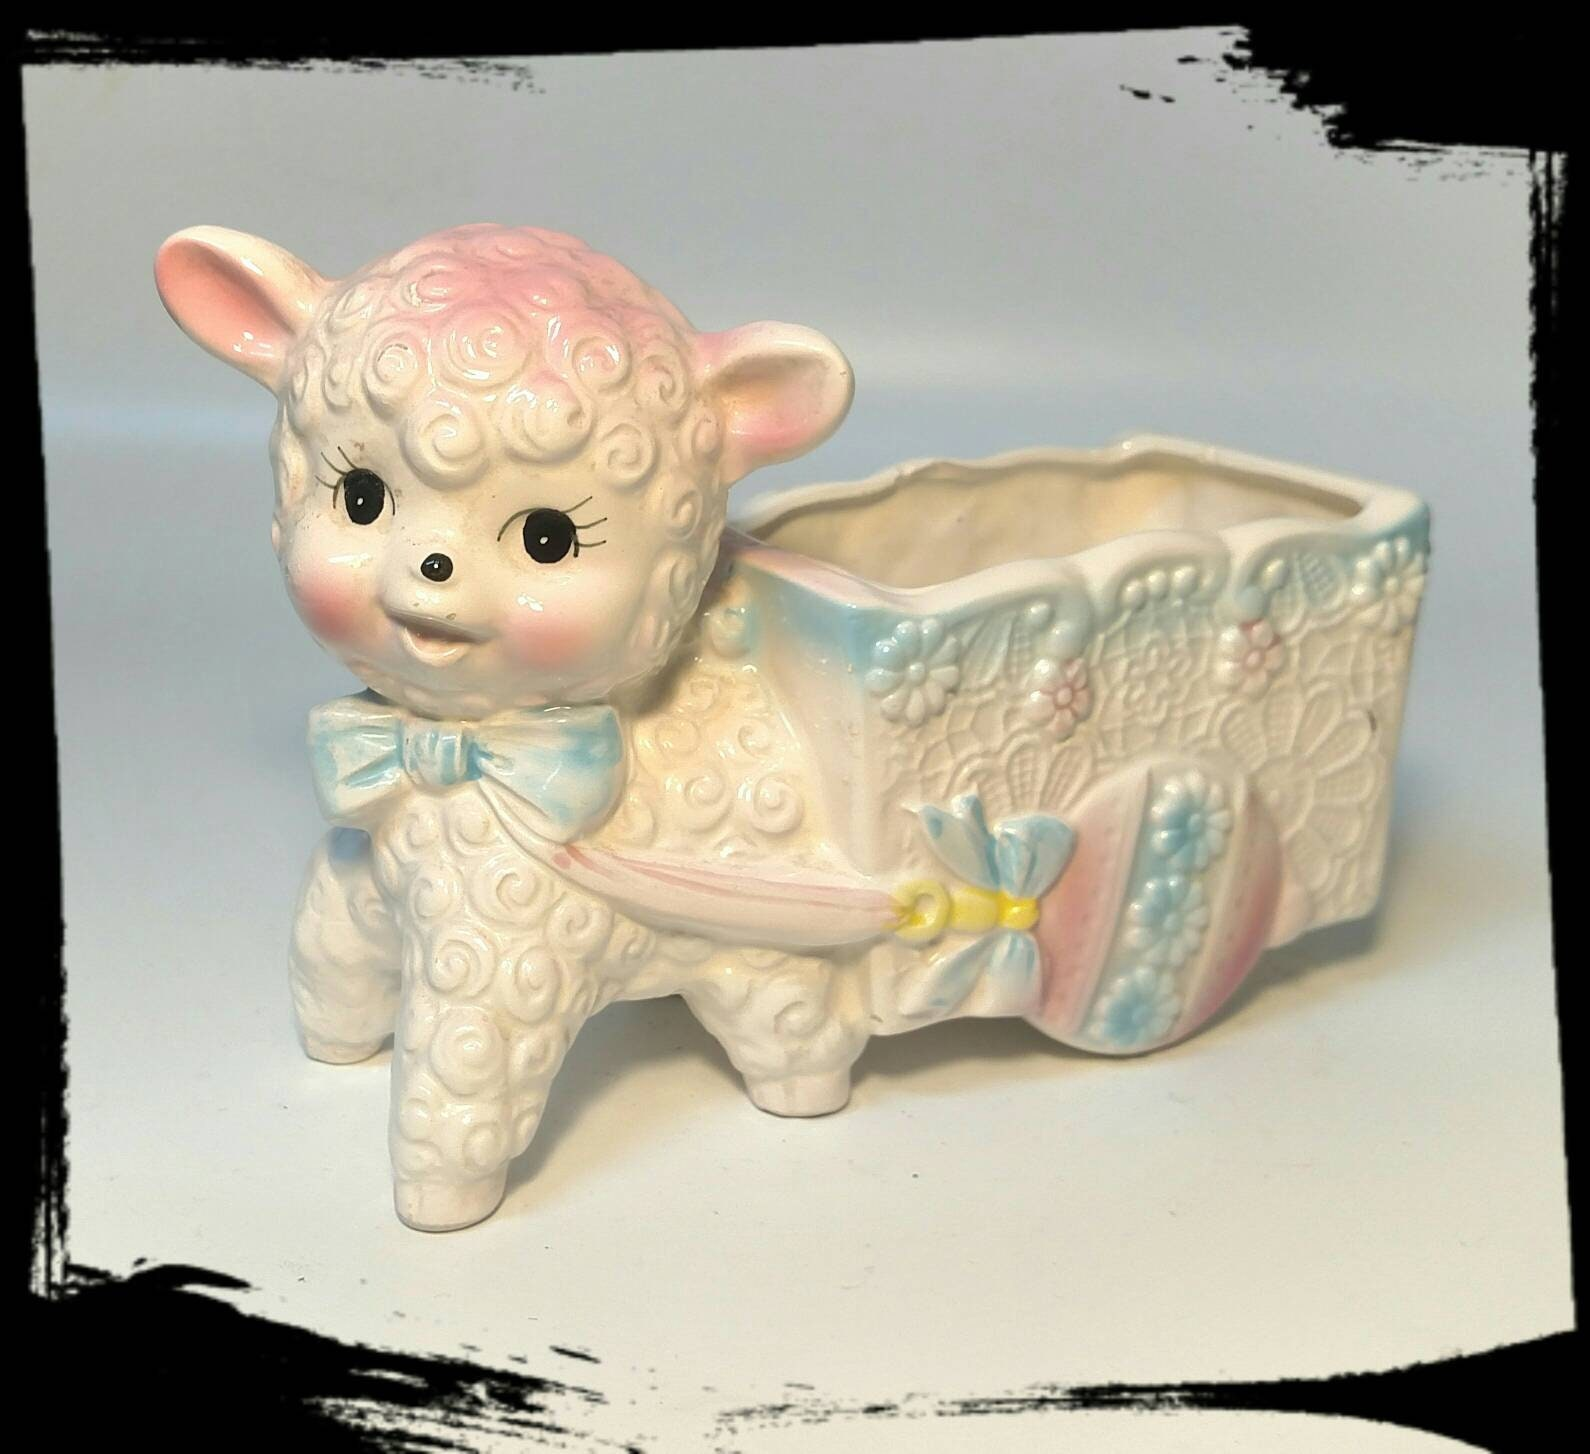 Vintage Big Eyes Nursery Ceramic Lamb Planter Collectible Lamb Planter Baby Room Decor F1953